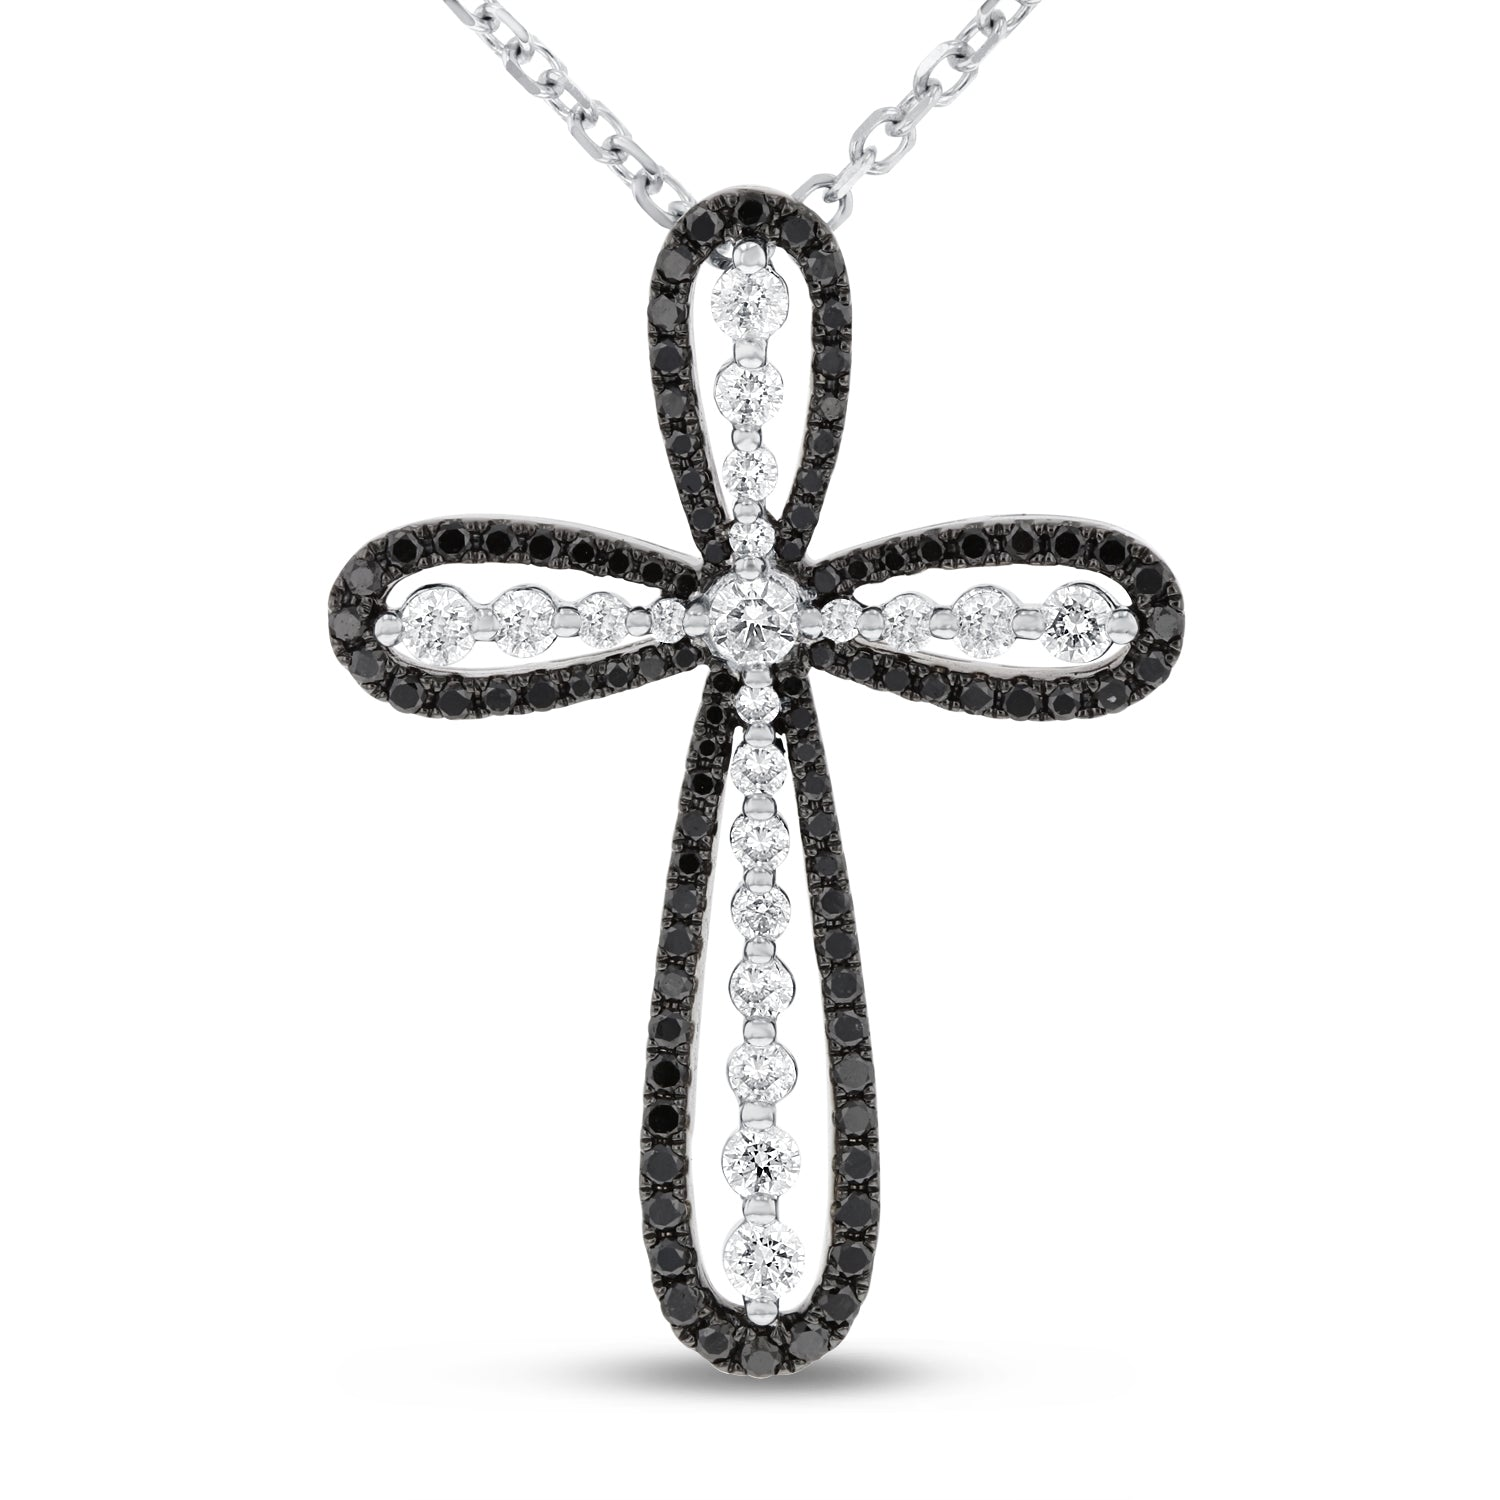 18K White Gold Cross Pendant, 0.96 Carats